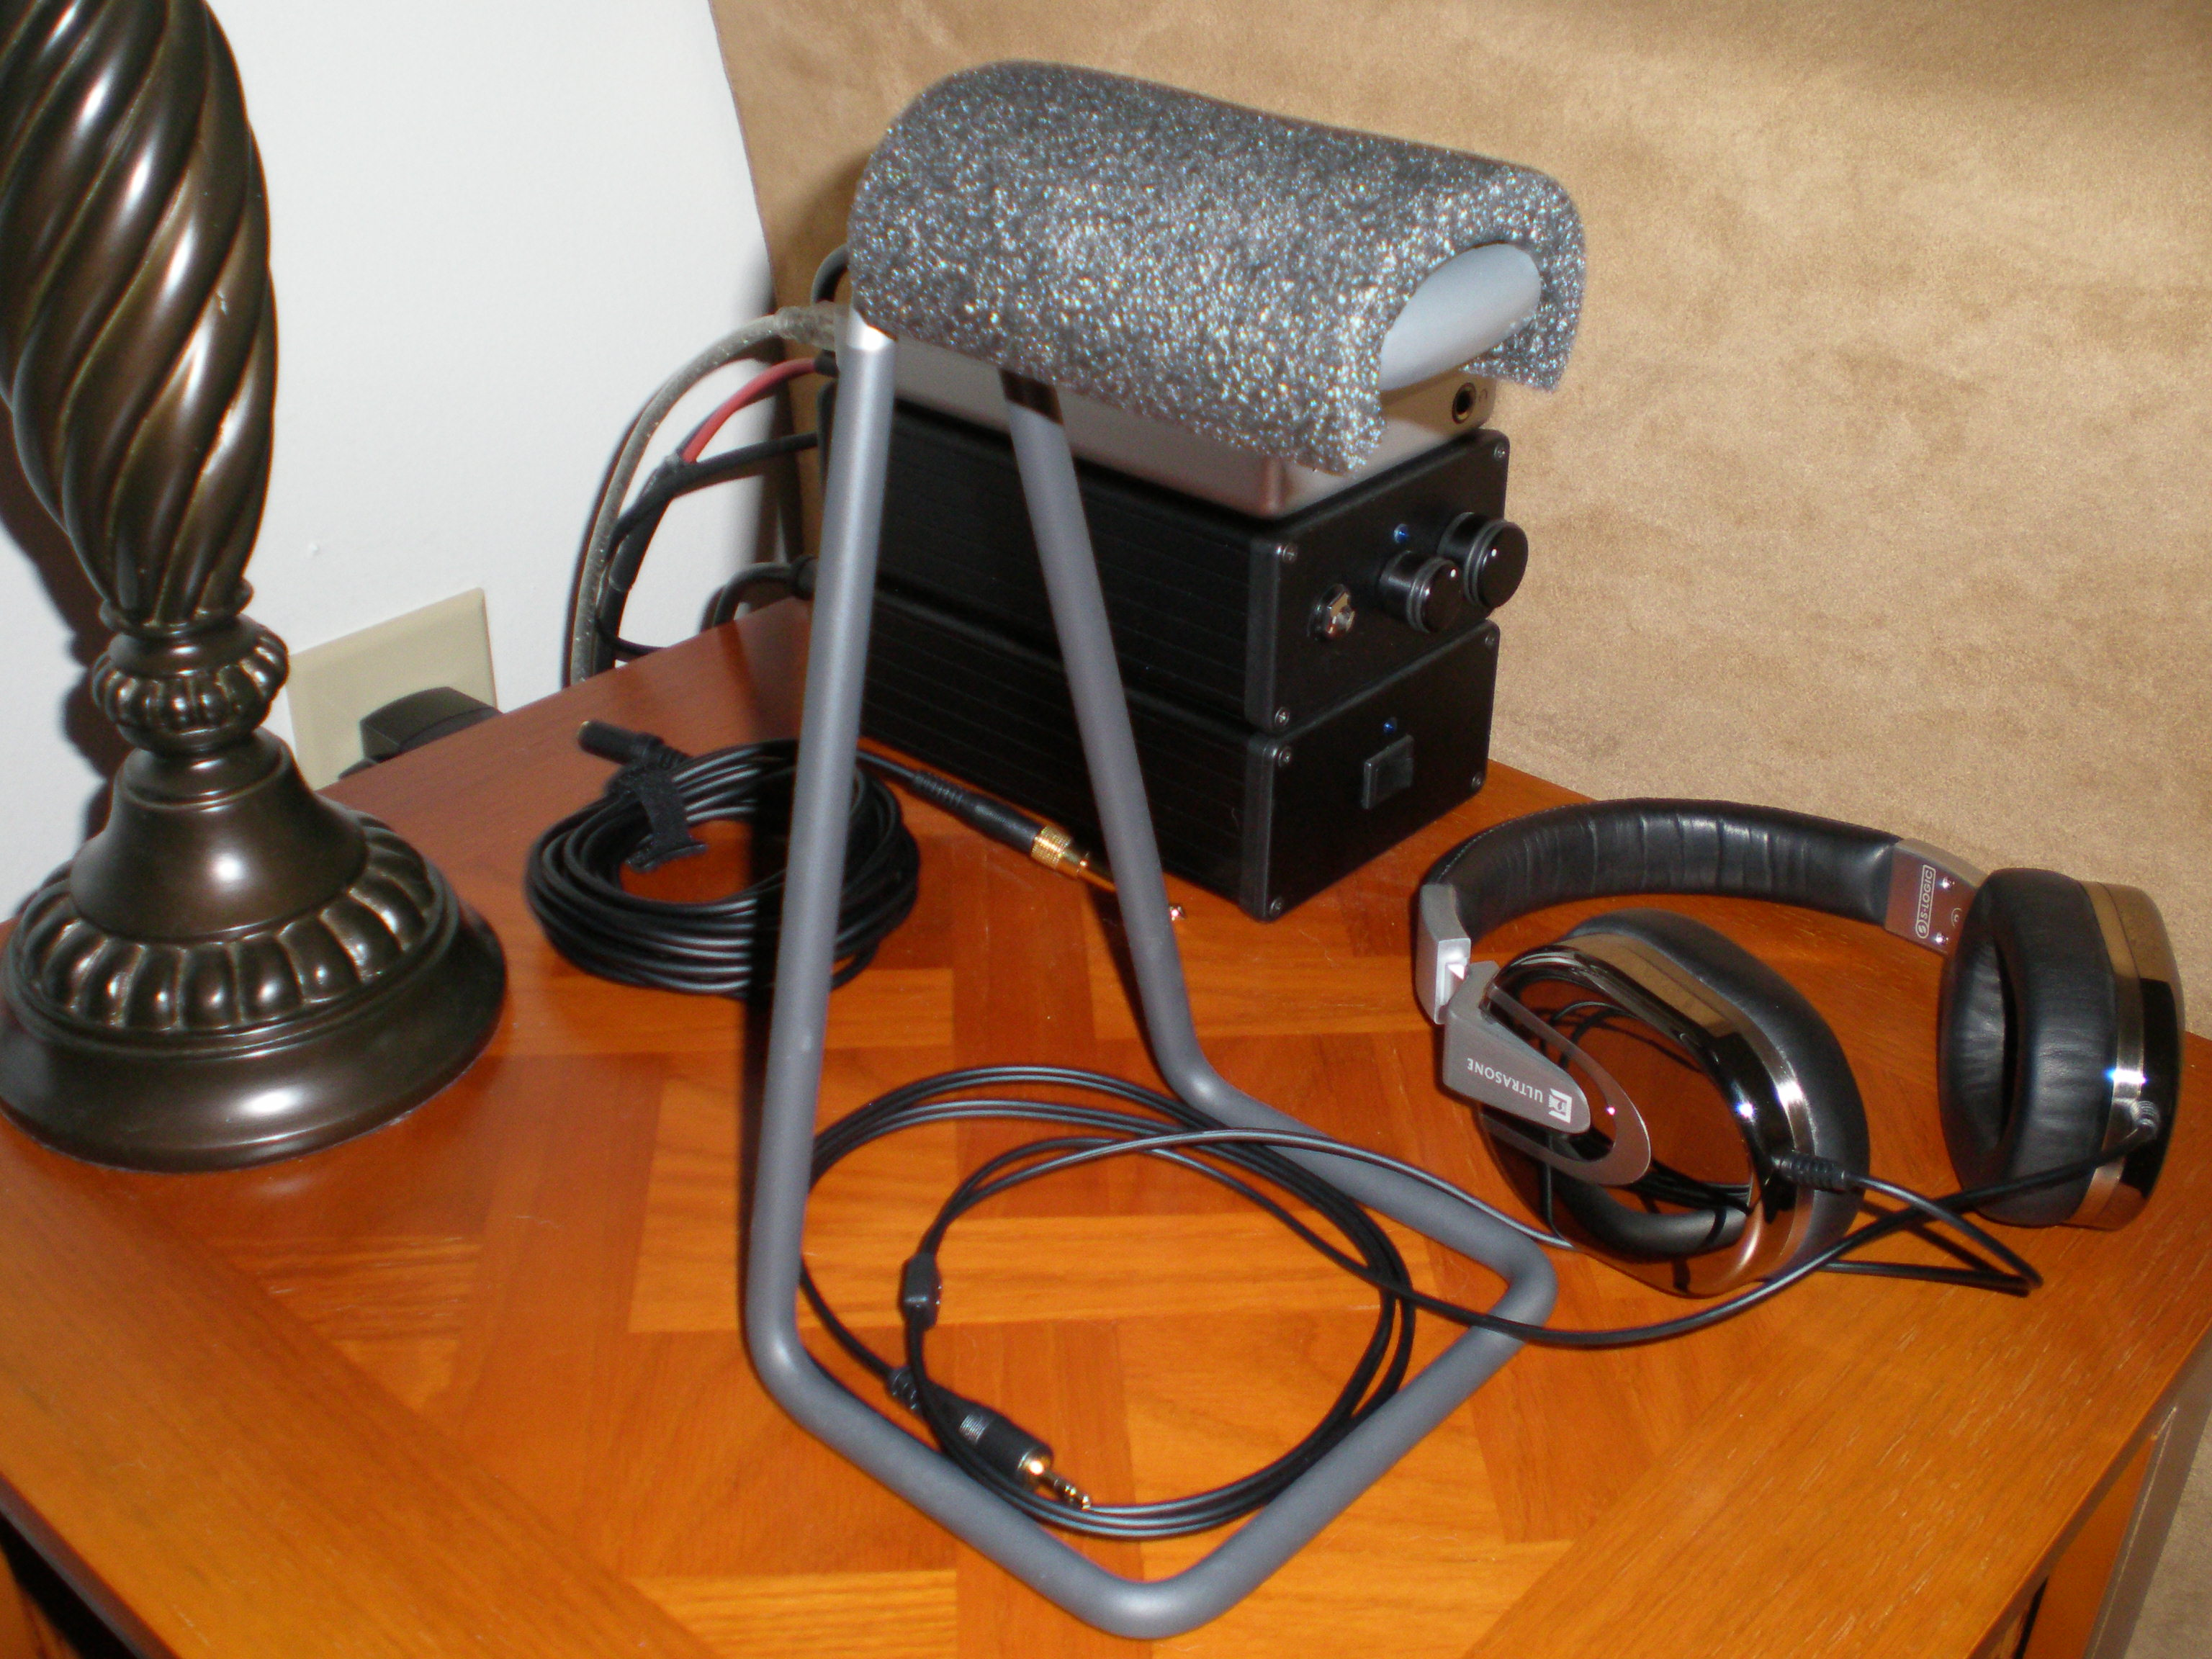 Can You Recomend A Good Quality Headphone Stand